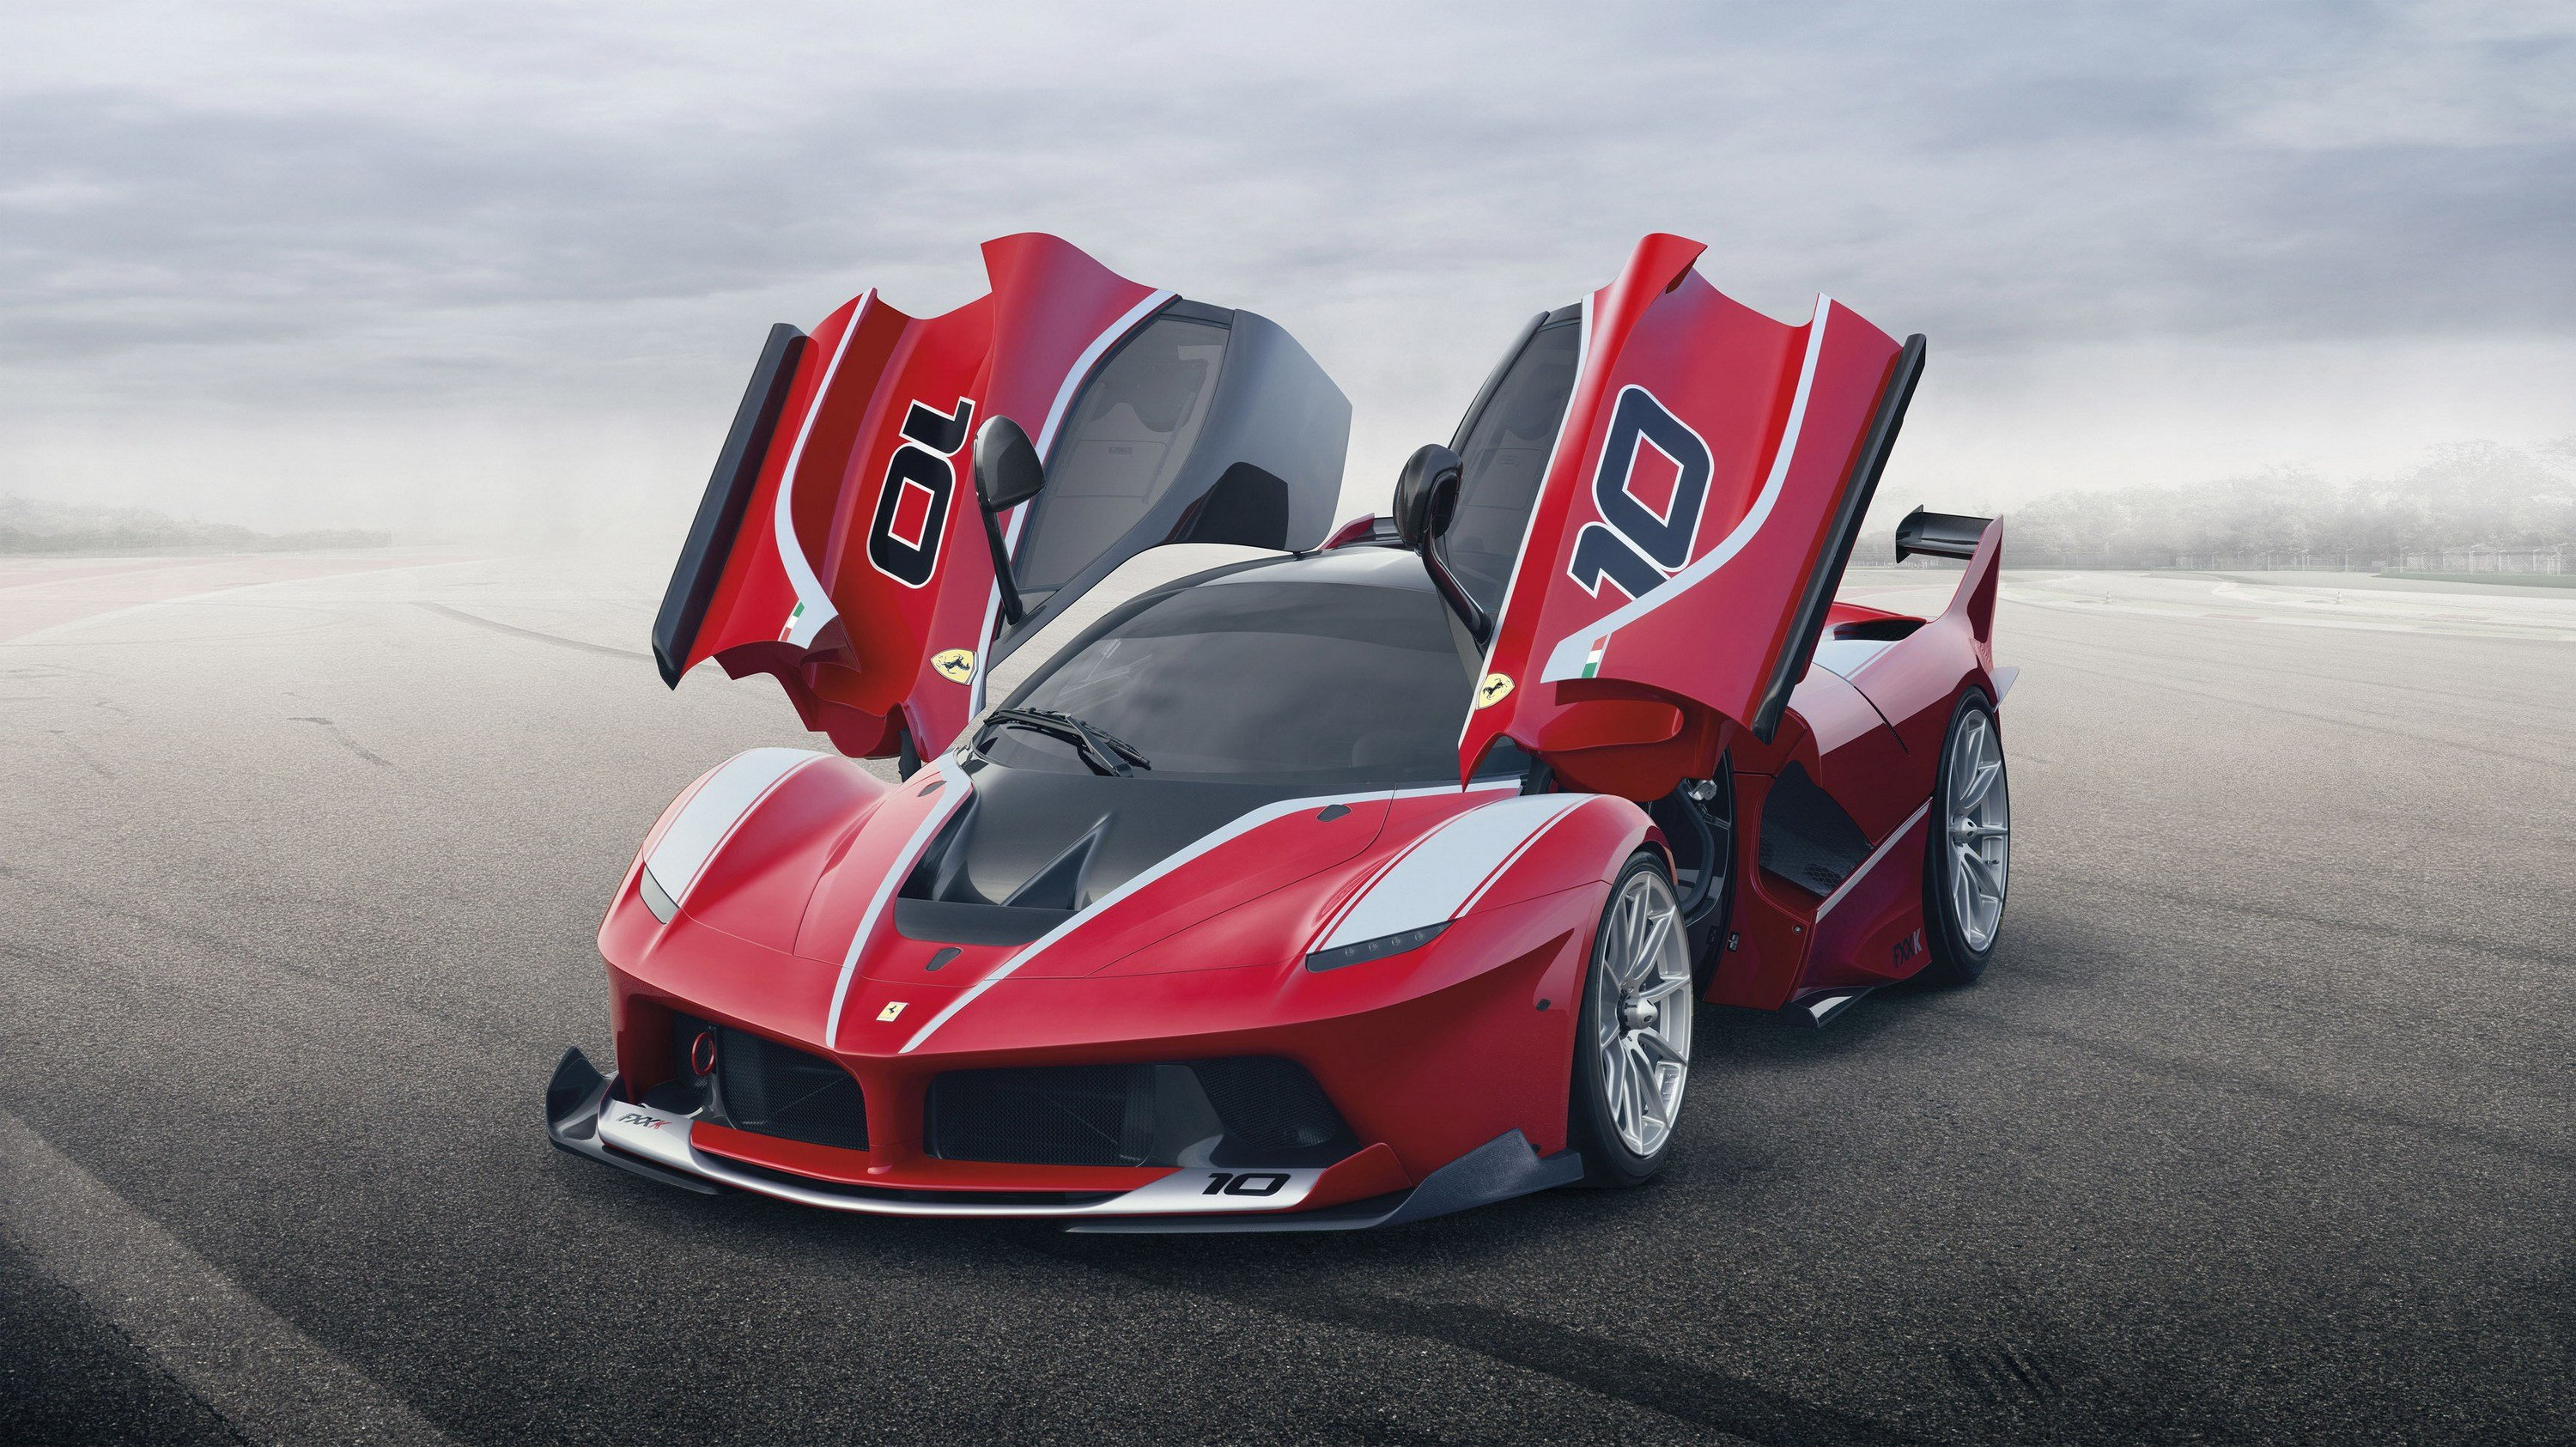 The Ferrari FXX K (AKA the track-only LaFerrari) has finally made its debut. Check out all of its hybrid supercar awesomeness at TopSpeed.com!